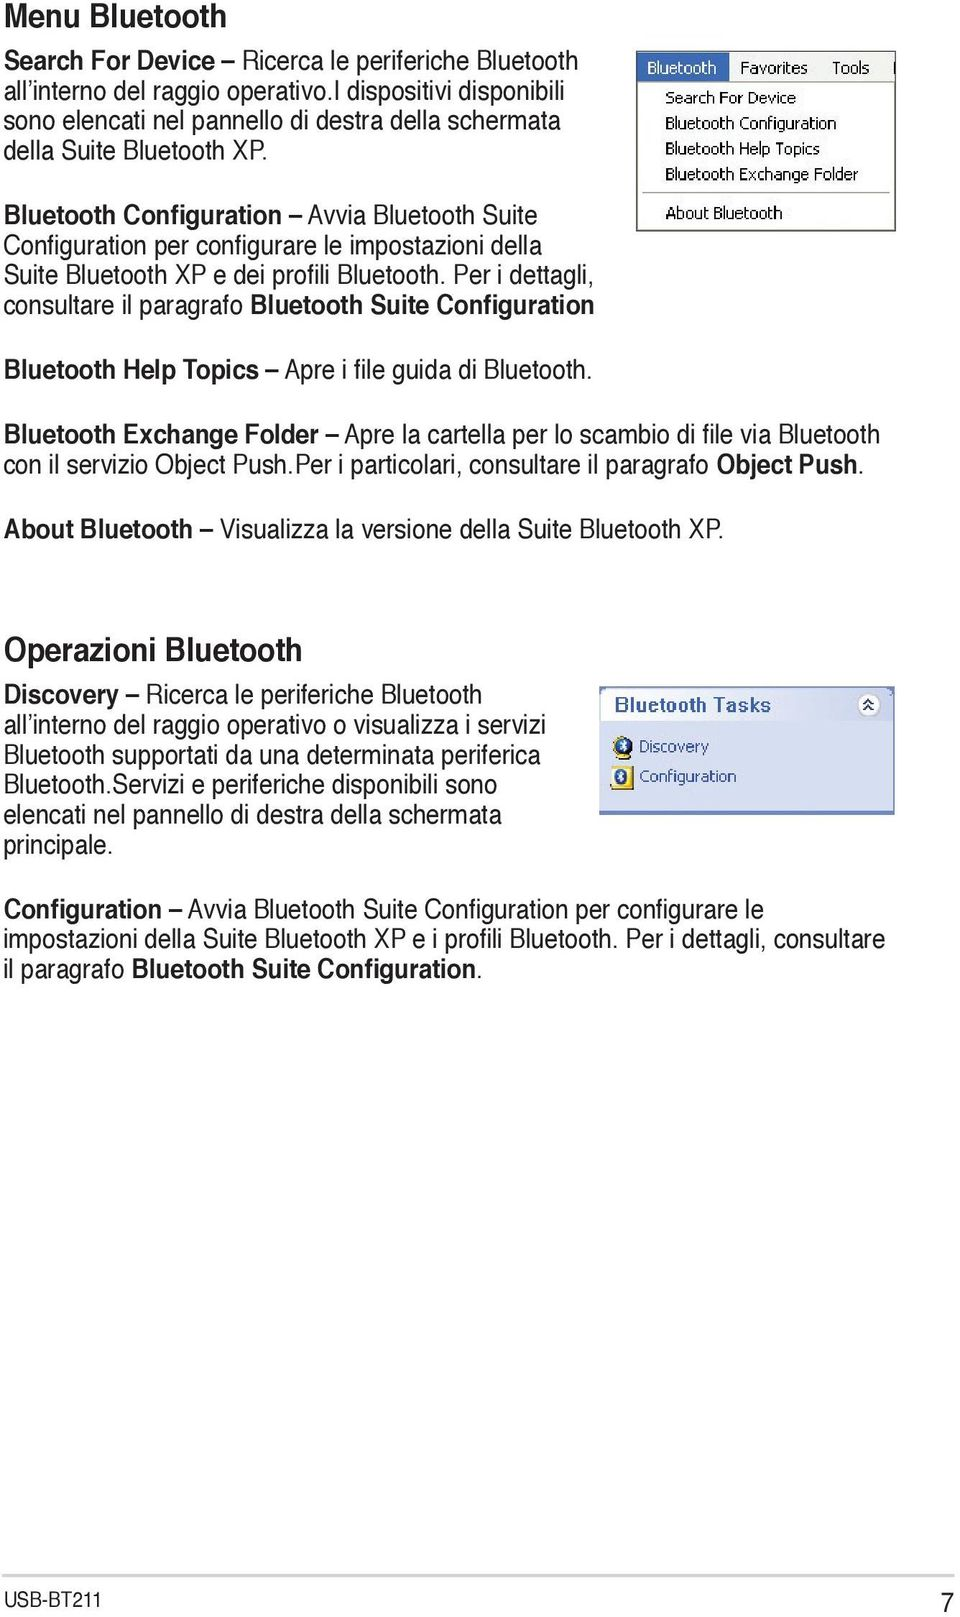 Bluetooth Configuration Avvia Bluetooth Suite Configuration per configurare le impostazioni della Suite Bluetooth XP e dei profili Bluetooth.